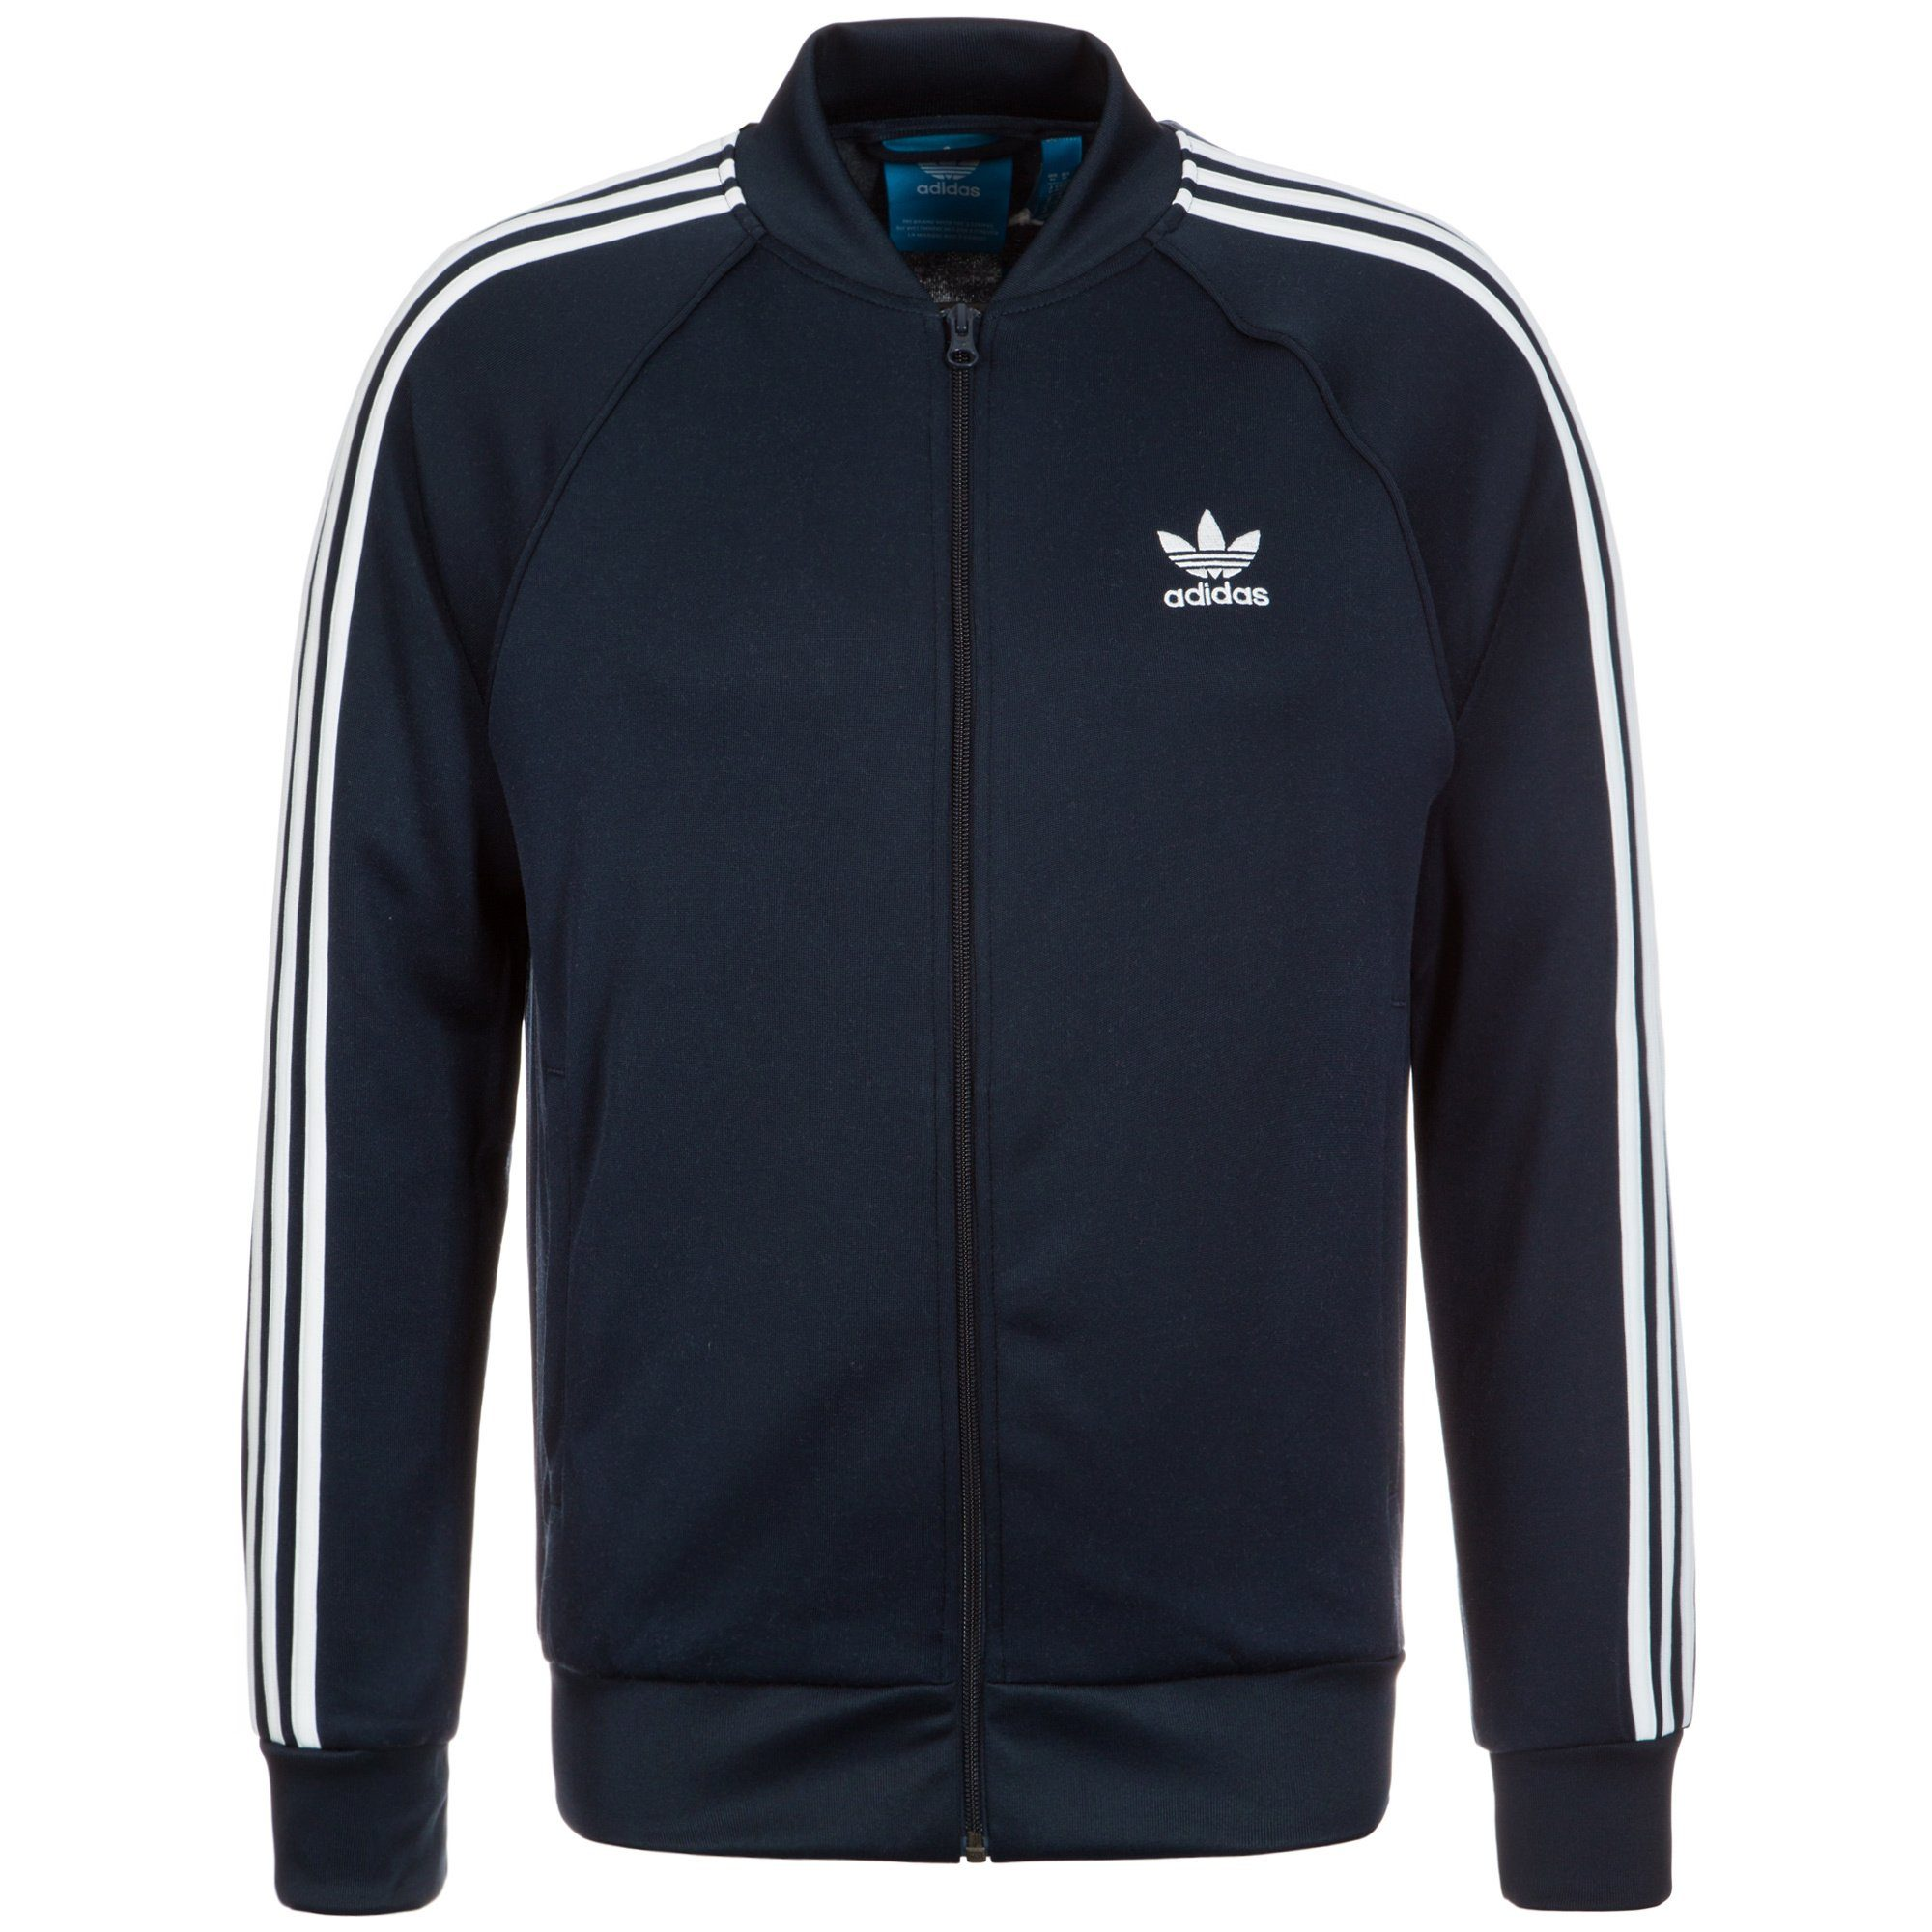 ADIDAS ORIGINALS ITASCA Track Top Herren Trainingsjacke